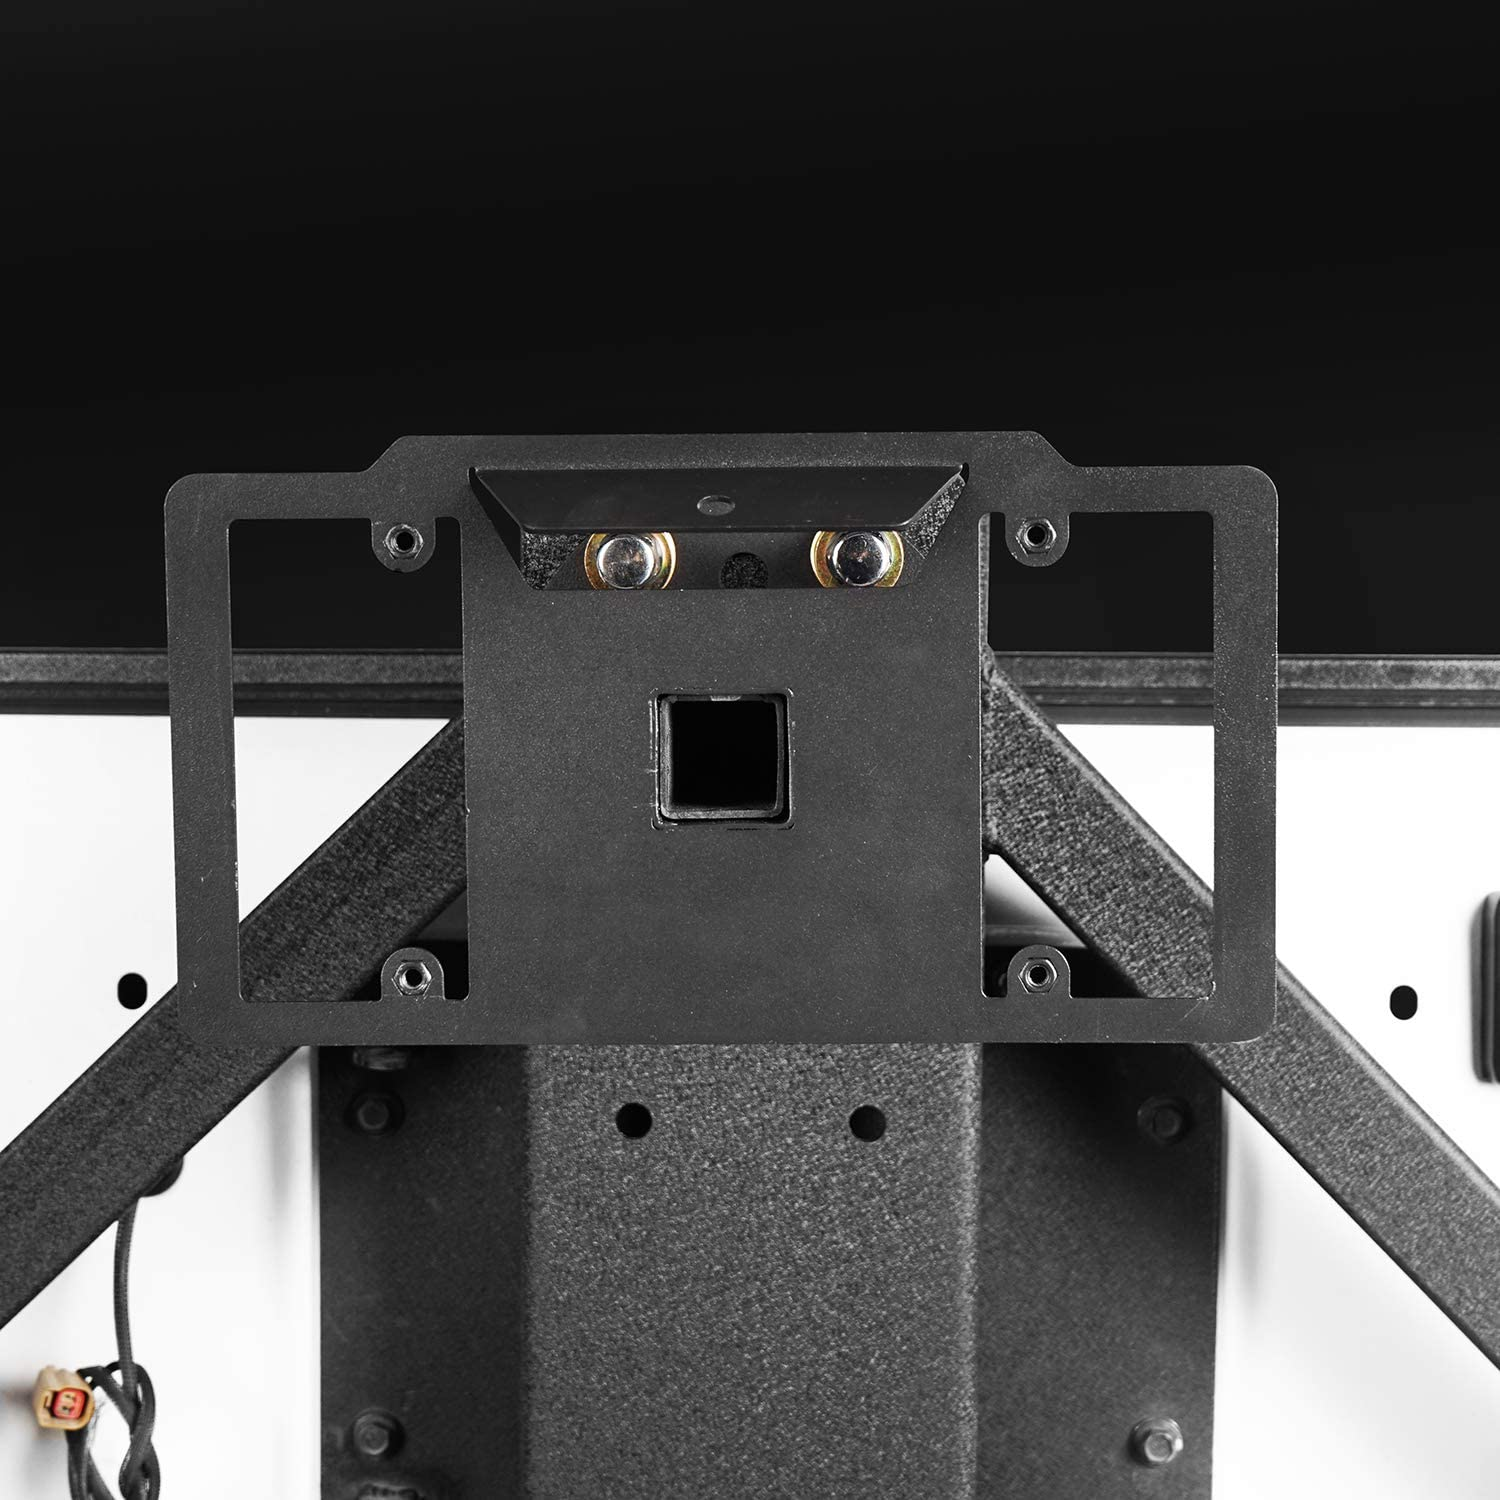 u-Box Spare Tire License Plate Mounting System for Jeep Wrangler TJ /& JK 97-18